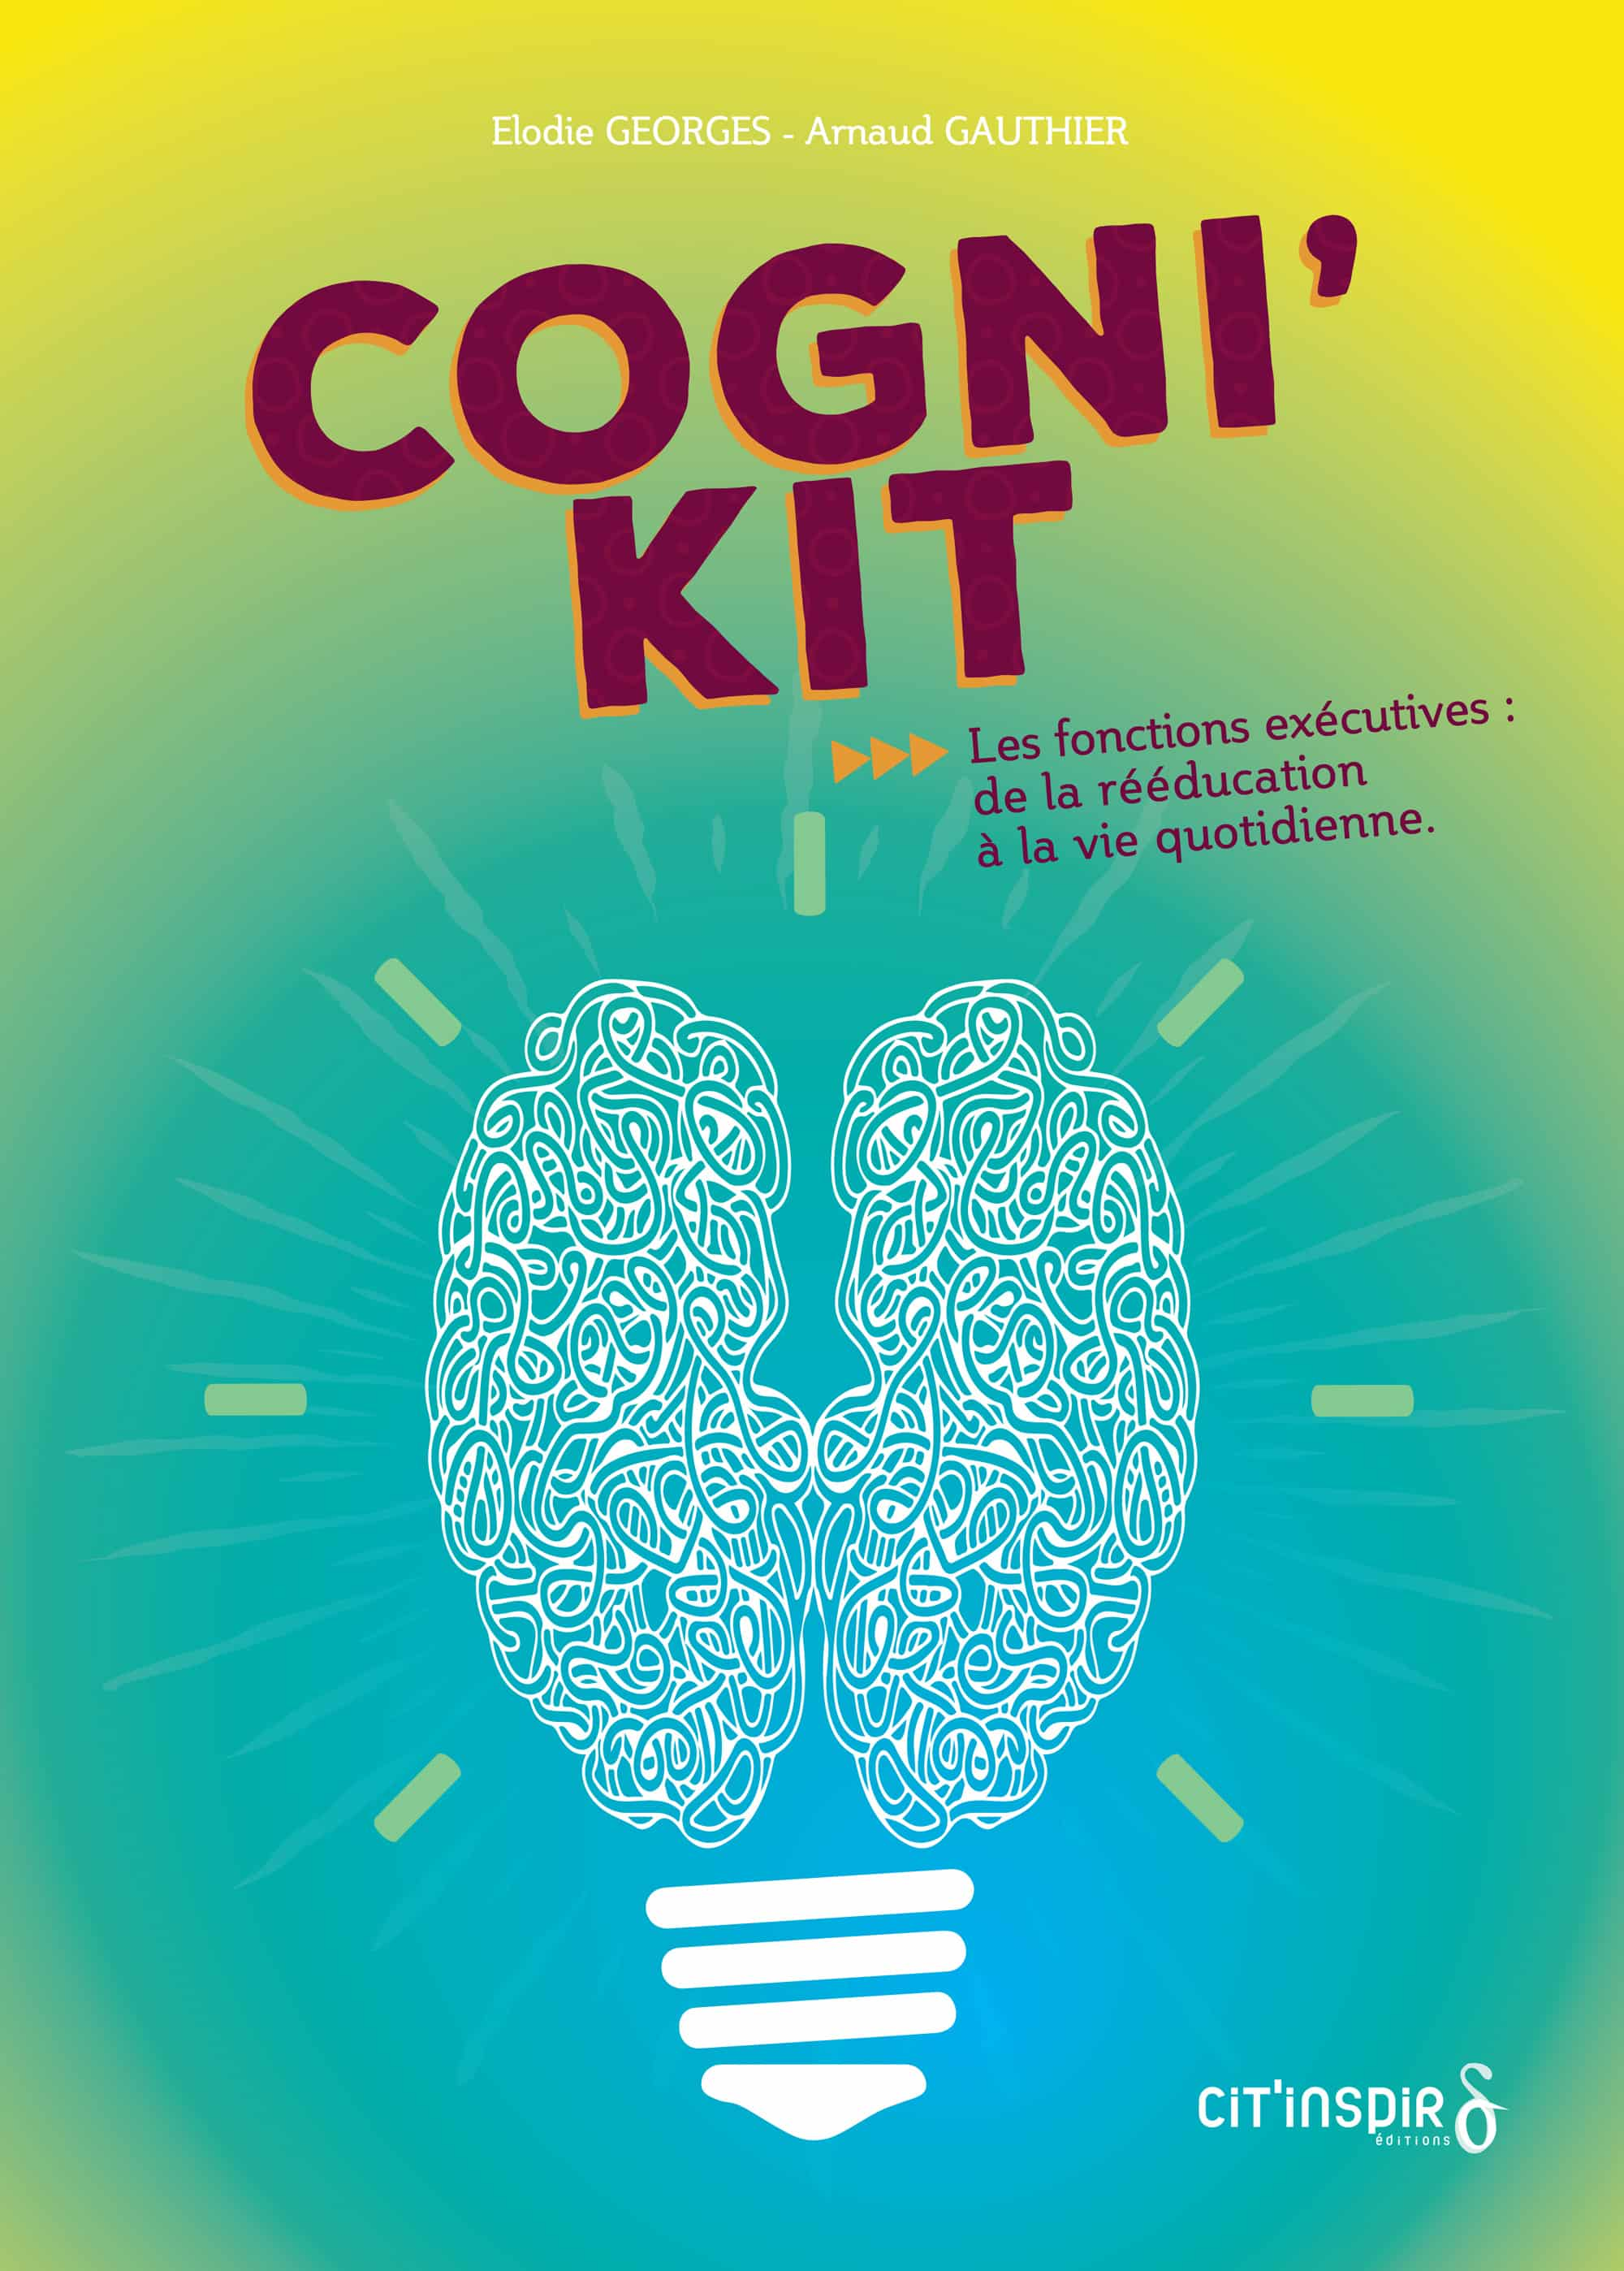 Citinspir-Cogni'kit